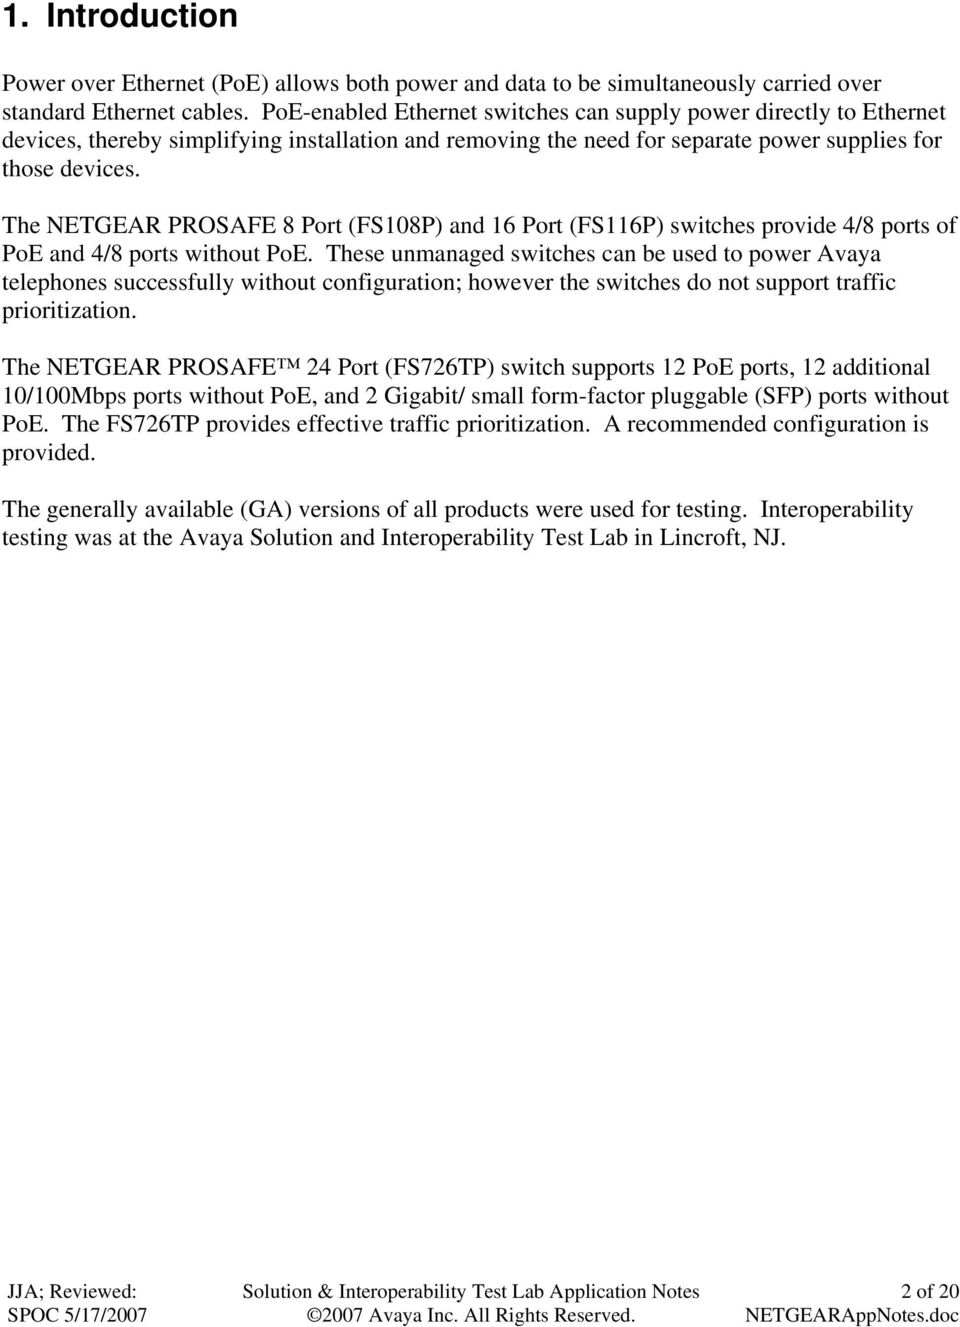 The NETGEAR PROSAFE 8 Port (FS108P) and 16 Port (FS116P) switches provide 4/8 ports of PoE and 4/8 ports without PoE.